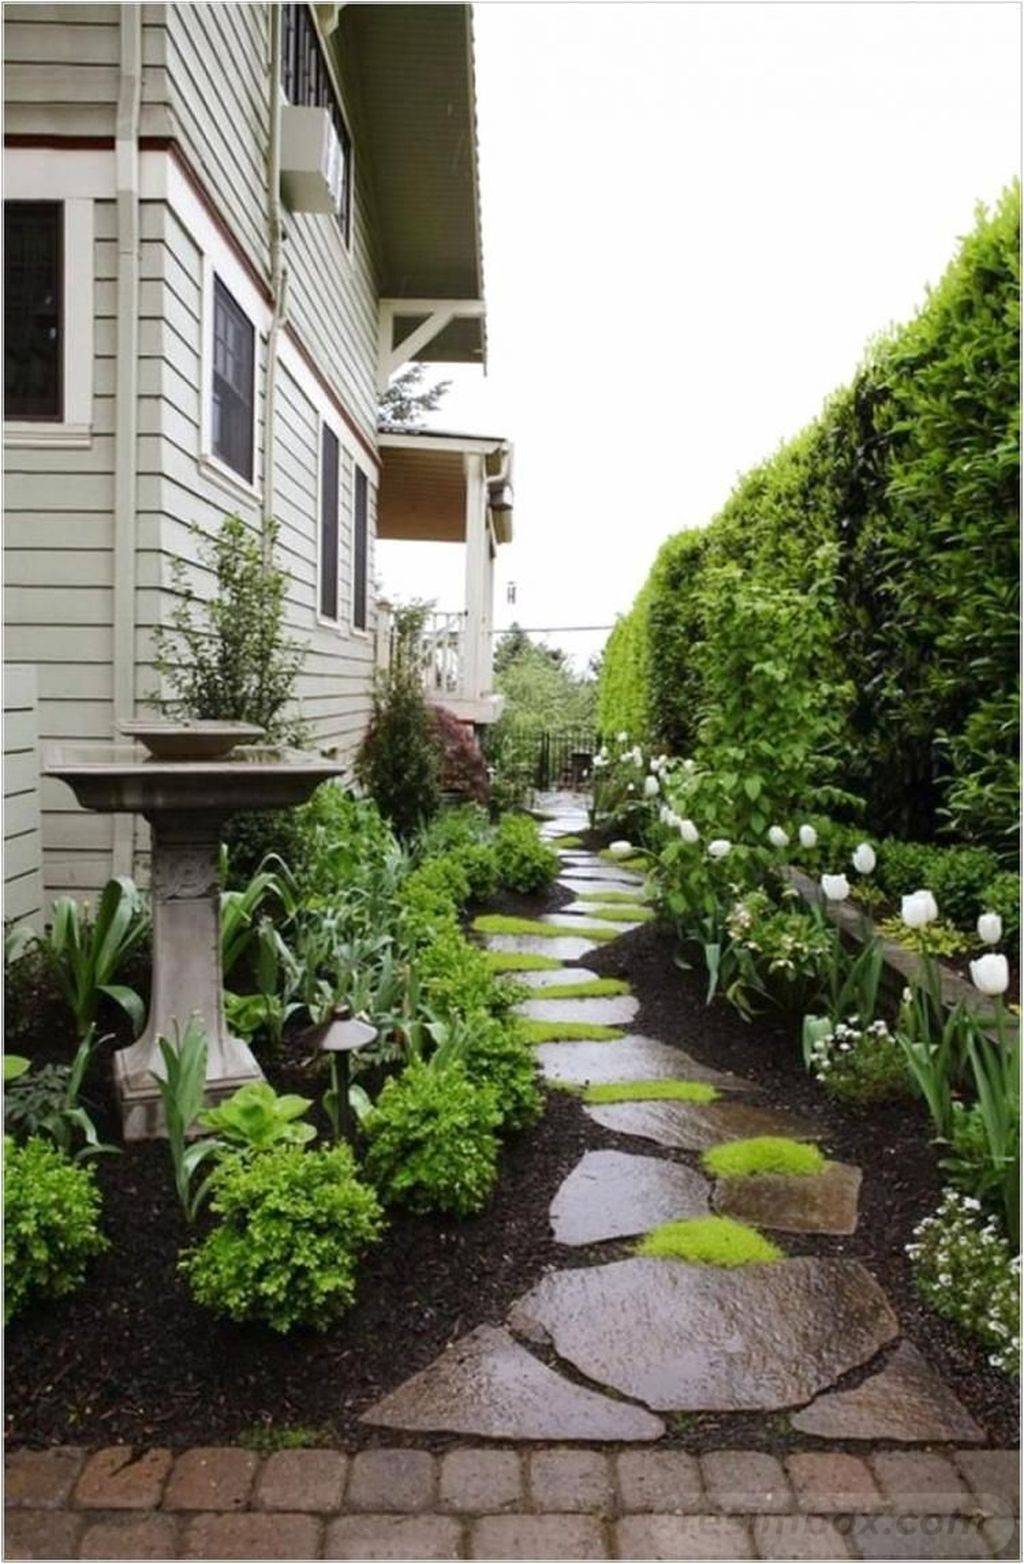 amazing garden ideas-694258098783837404